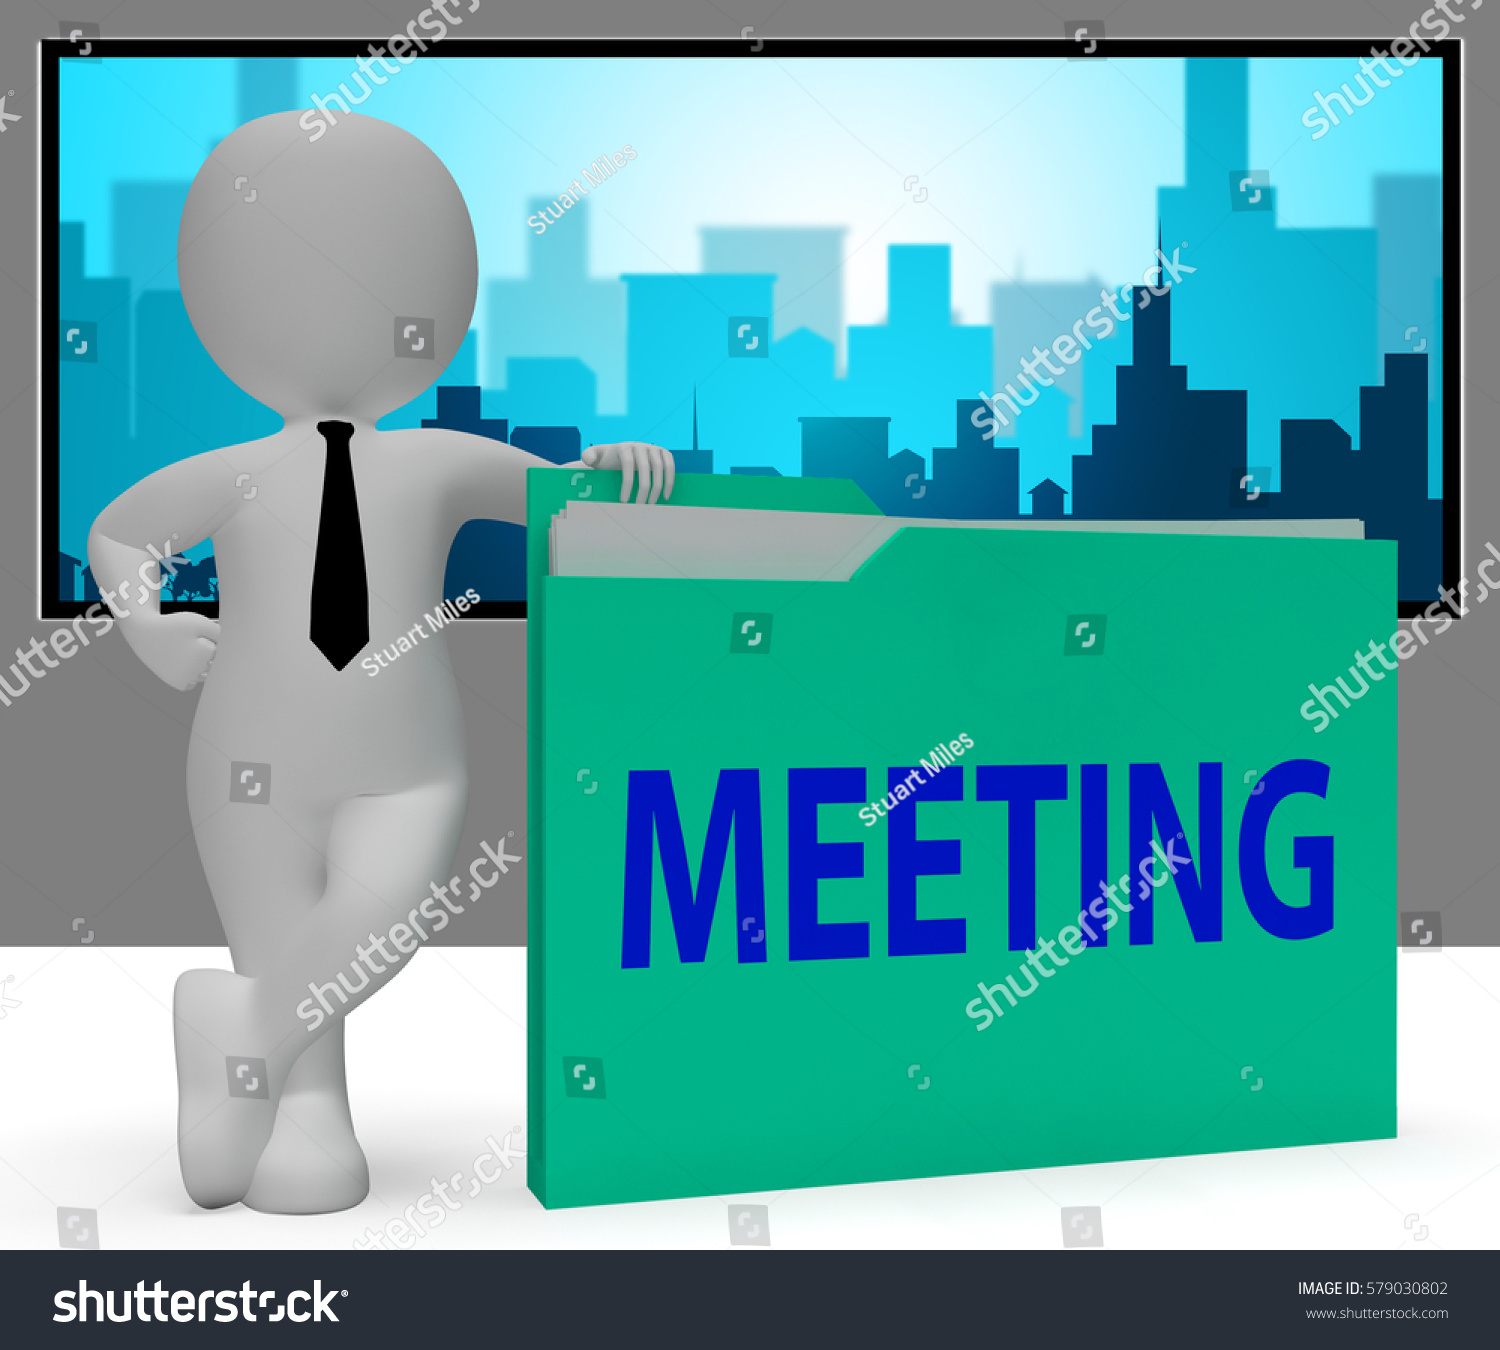 Meeting Folder Character Showing Discuss Meetings Stock Illustration ...